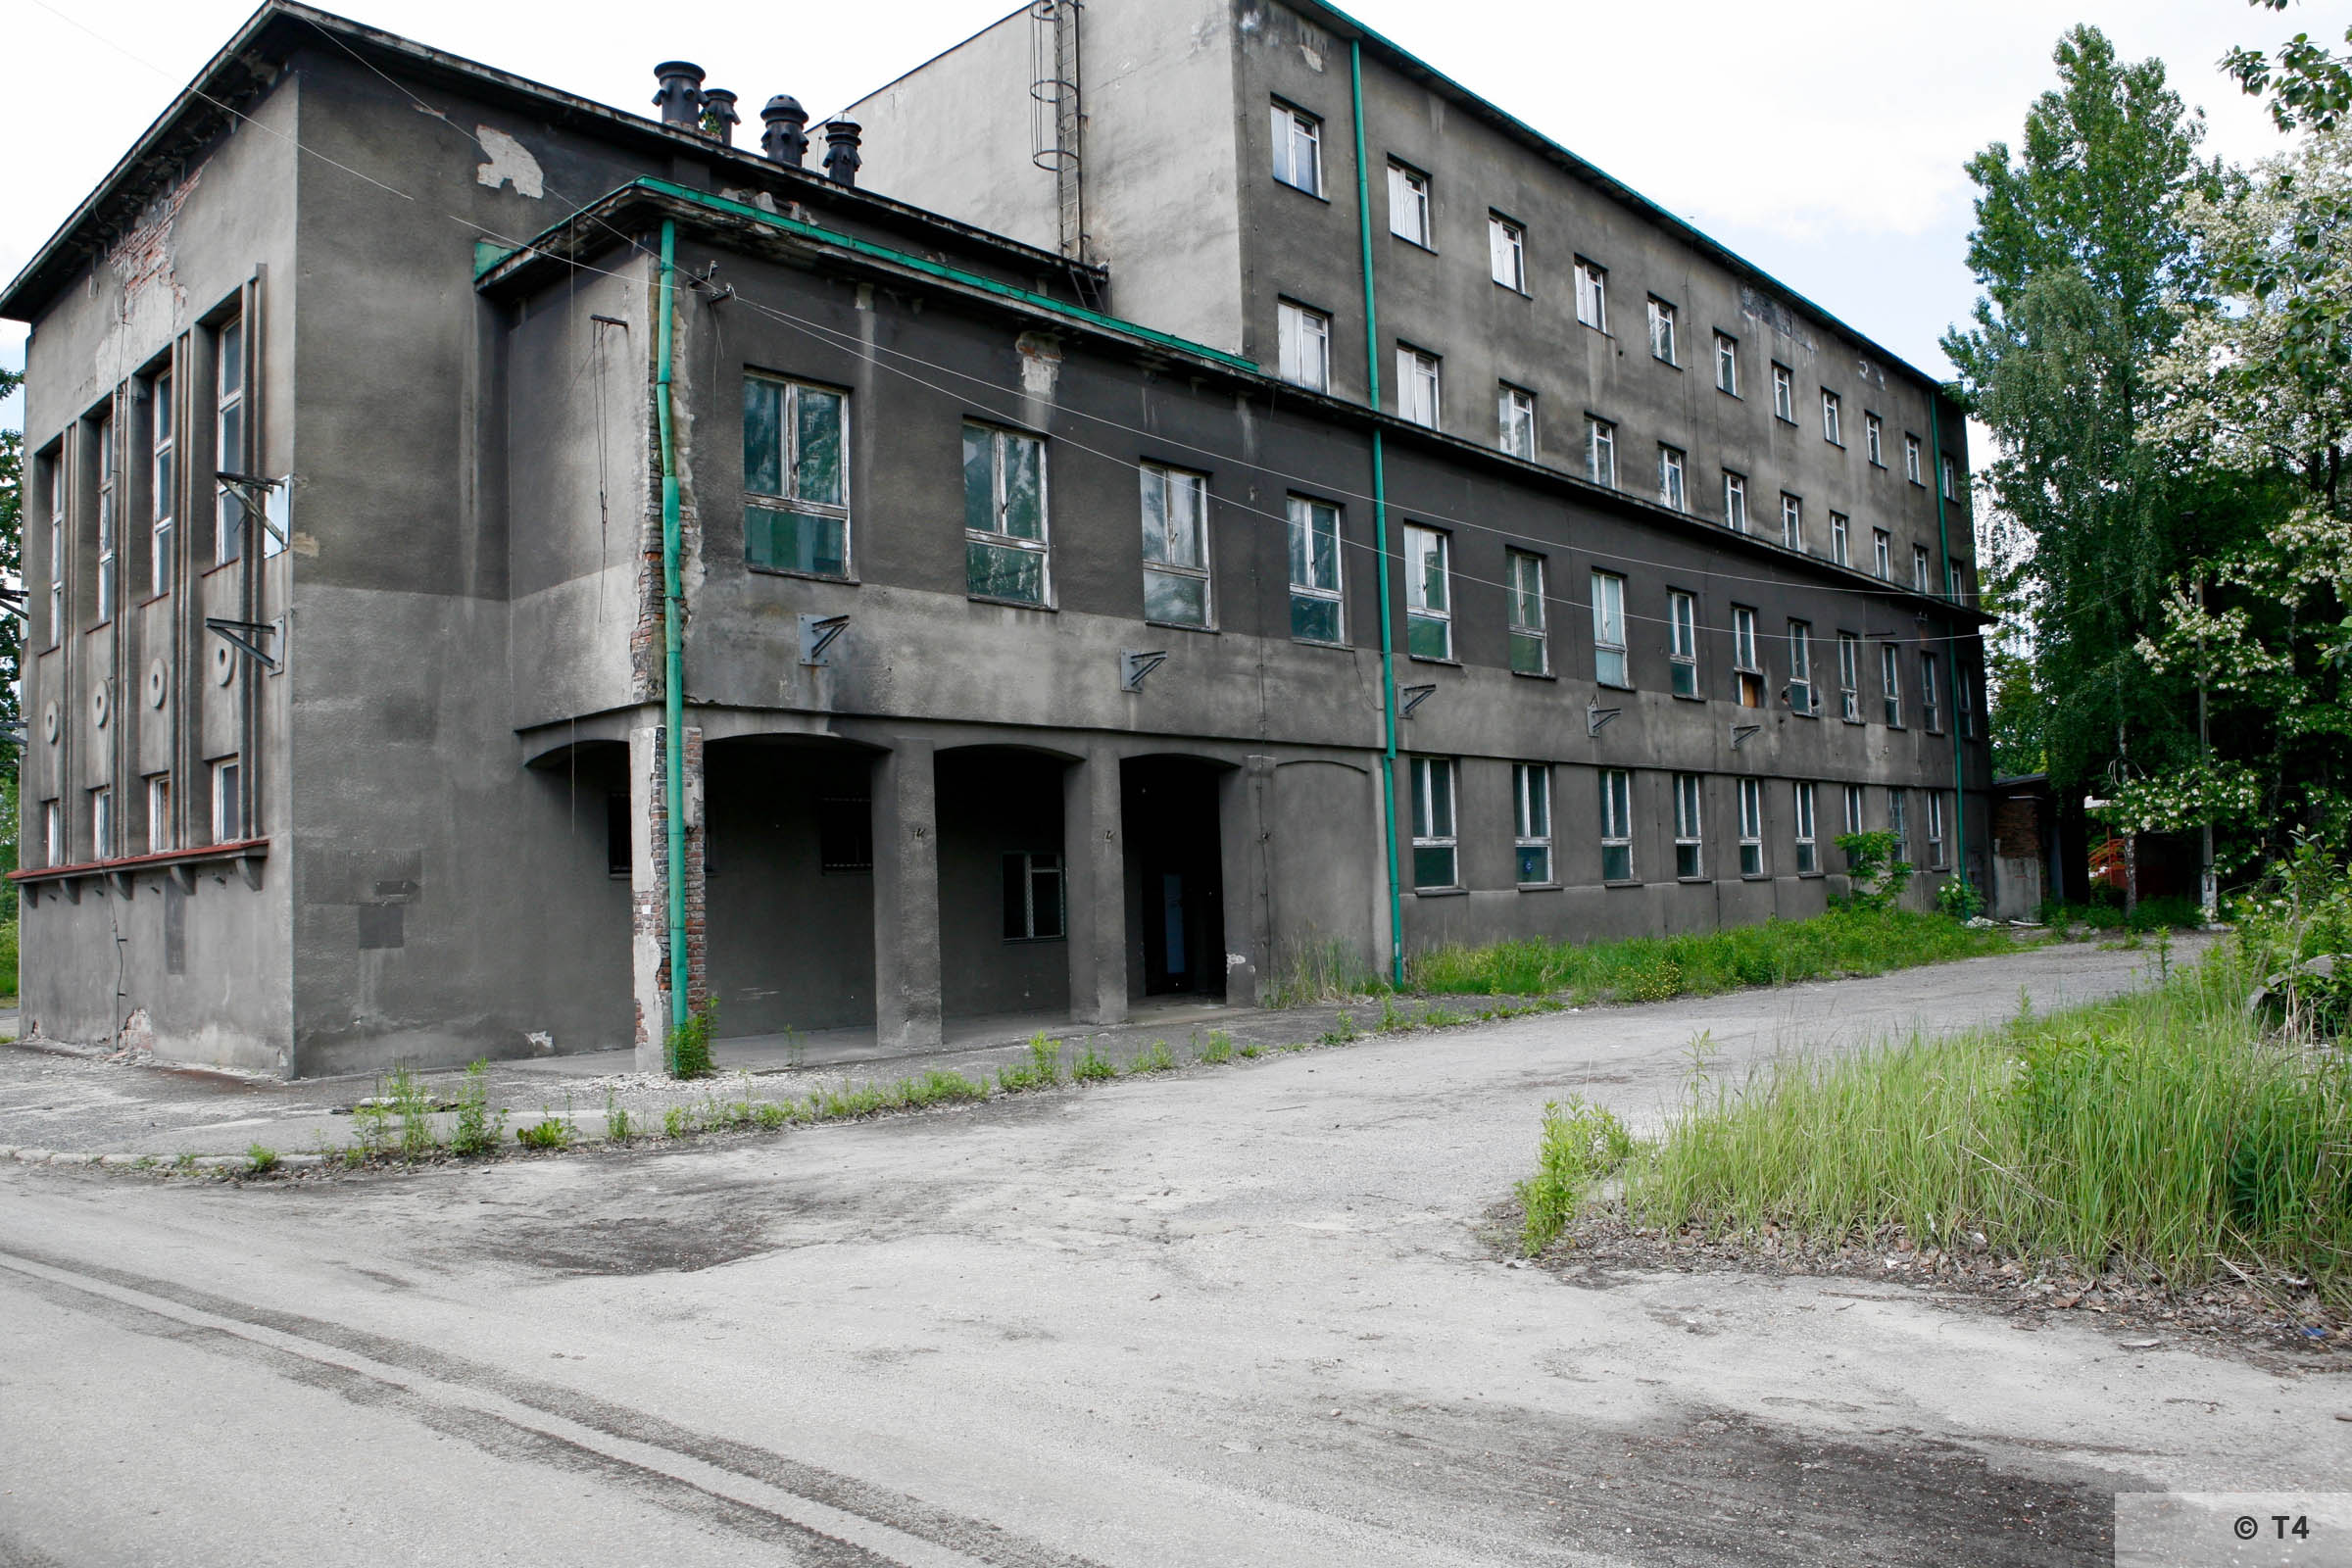 Zygmunt steel works. Adminsitration building near main entrance. 2006 T4 6231